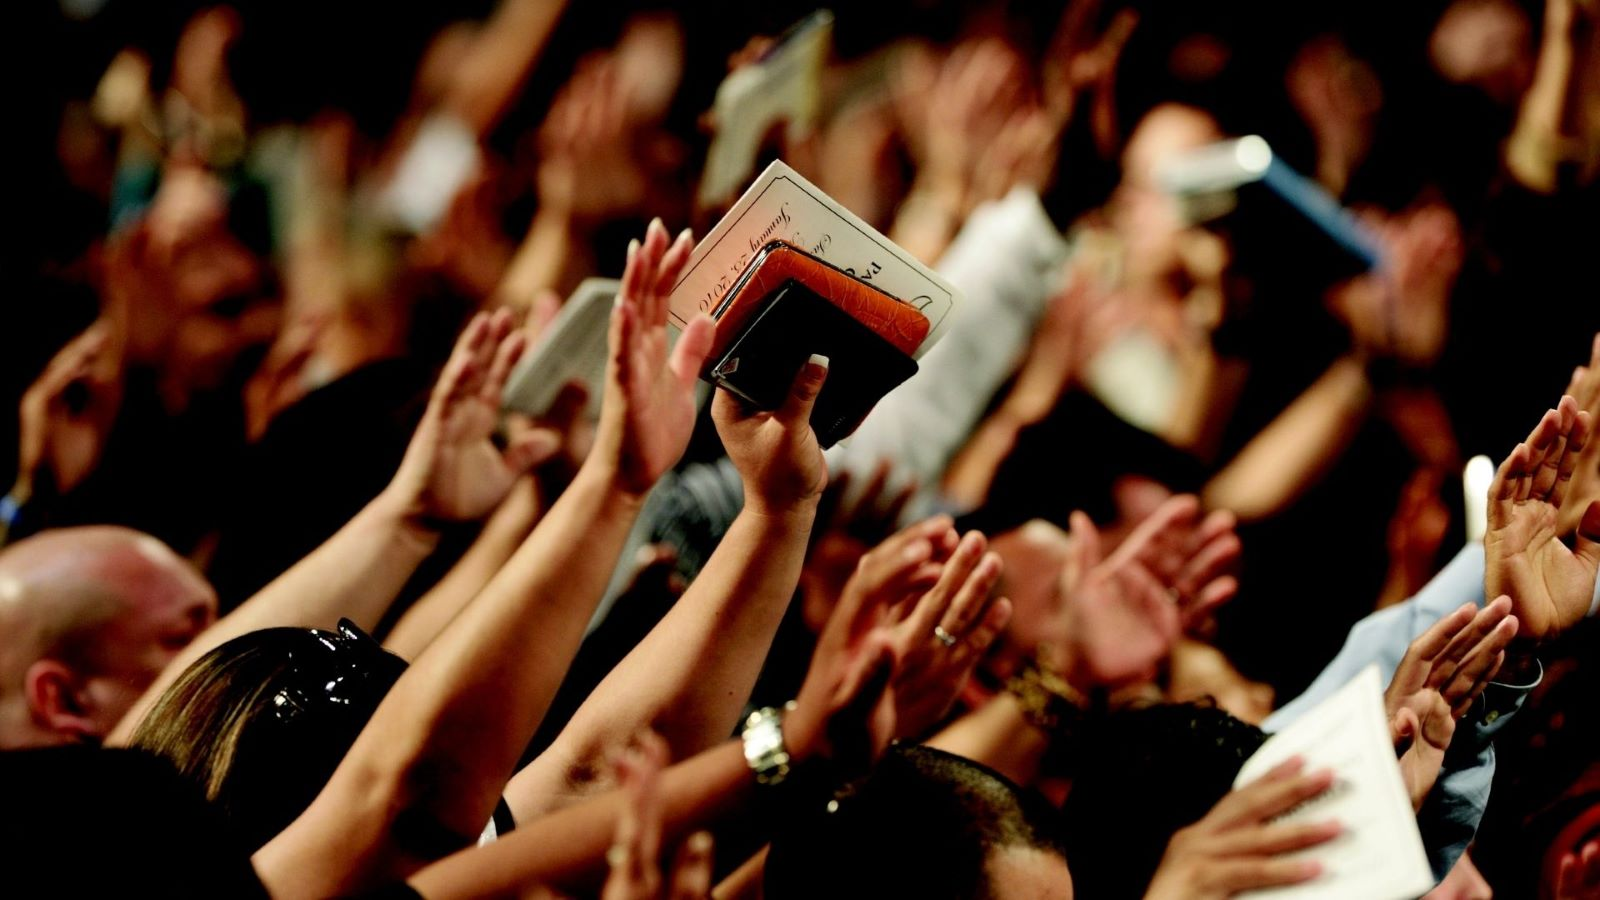 People raising their hands at a religious organization event